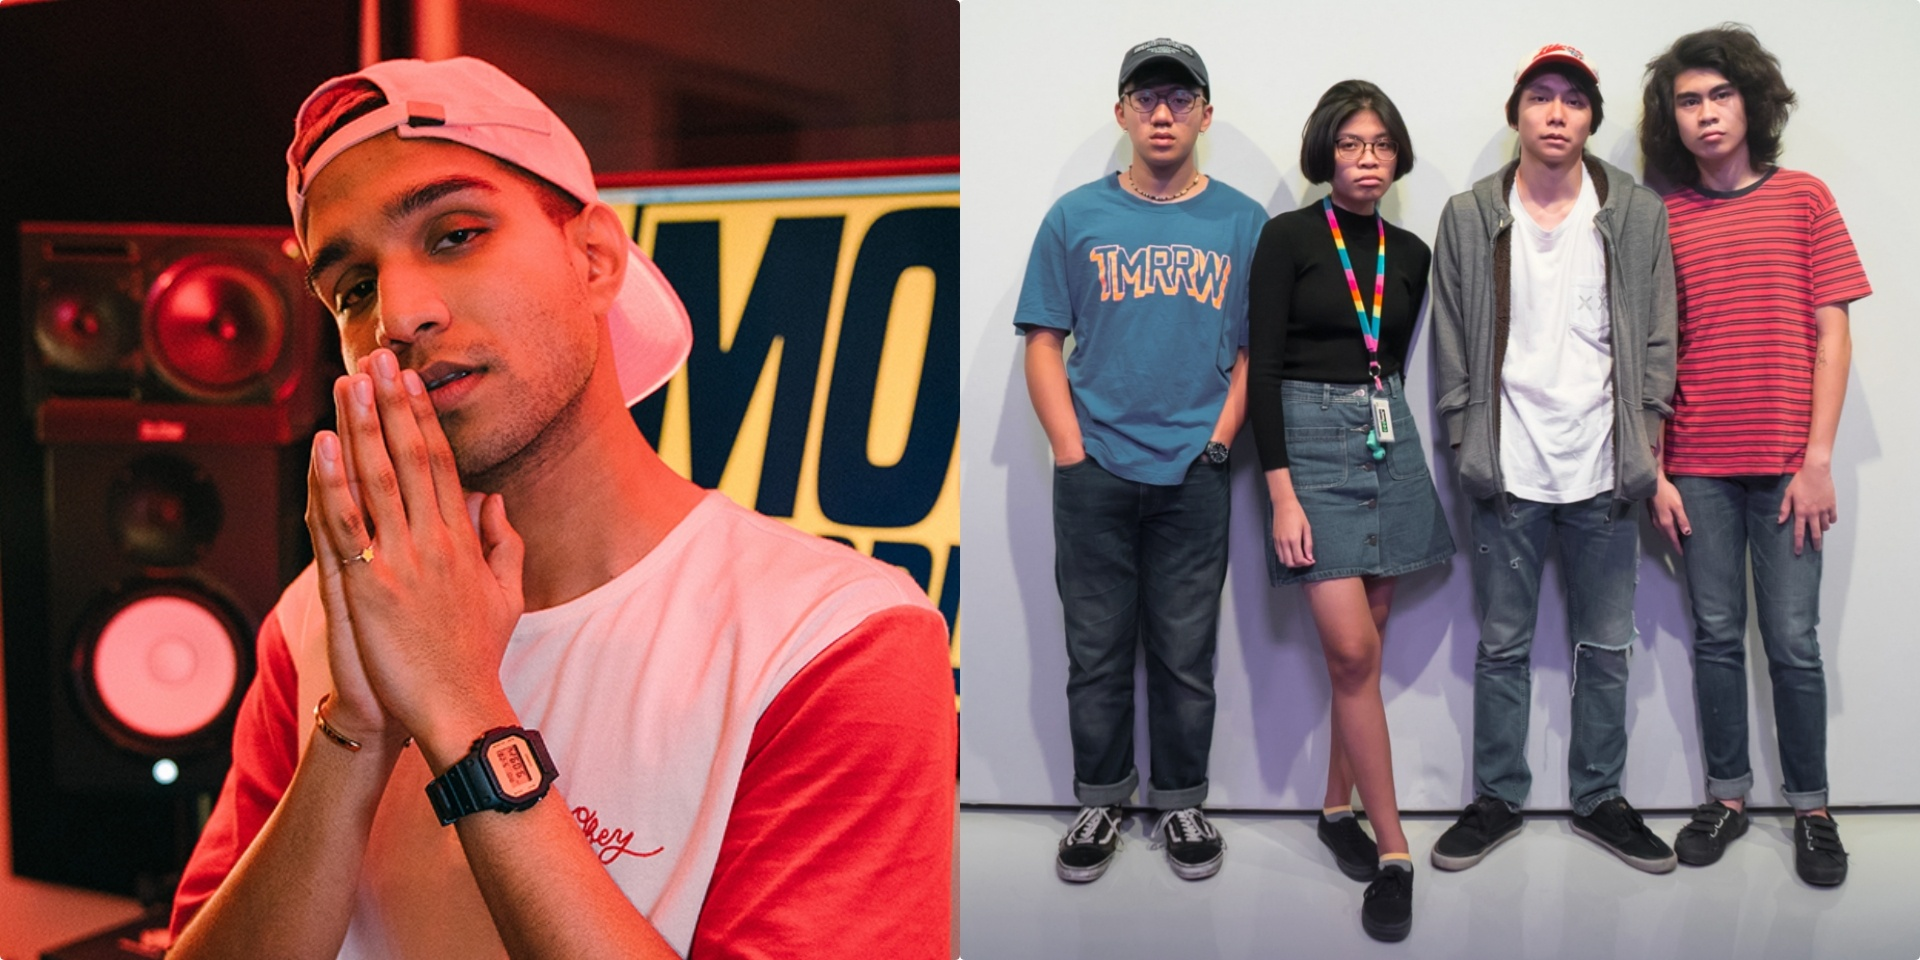 IGNITE! Music Festival announces line-up – Fariz Jabba, Yung Raja, Cosmic Child and more to perform